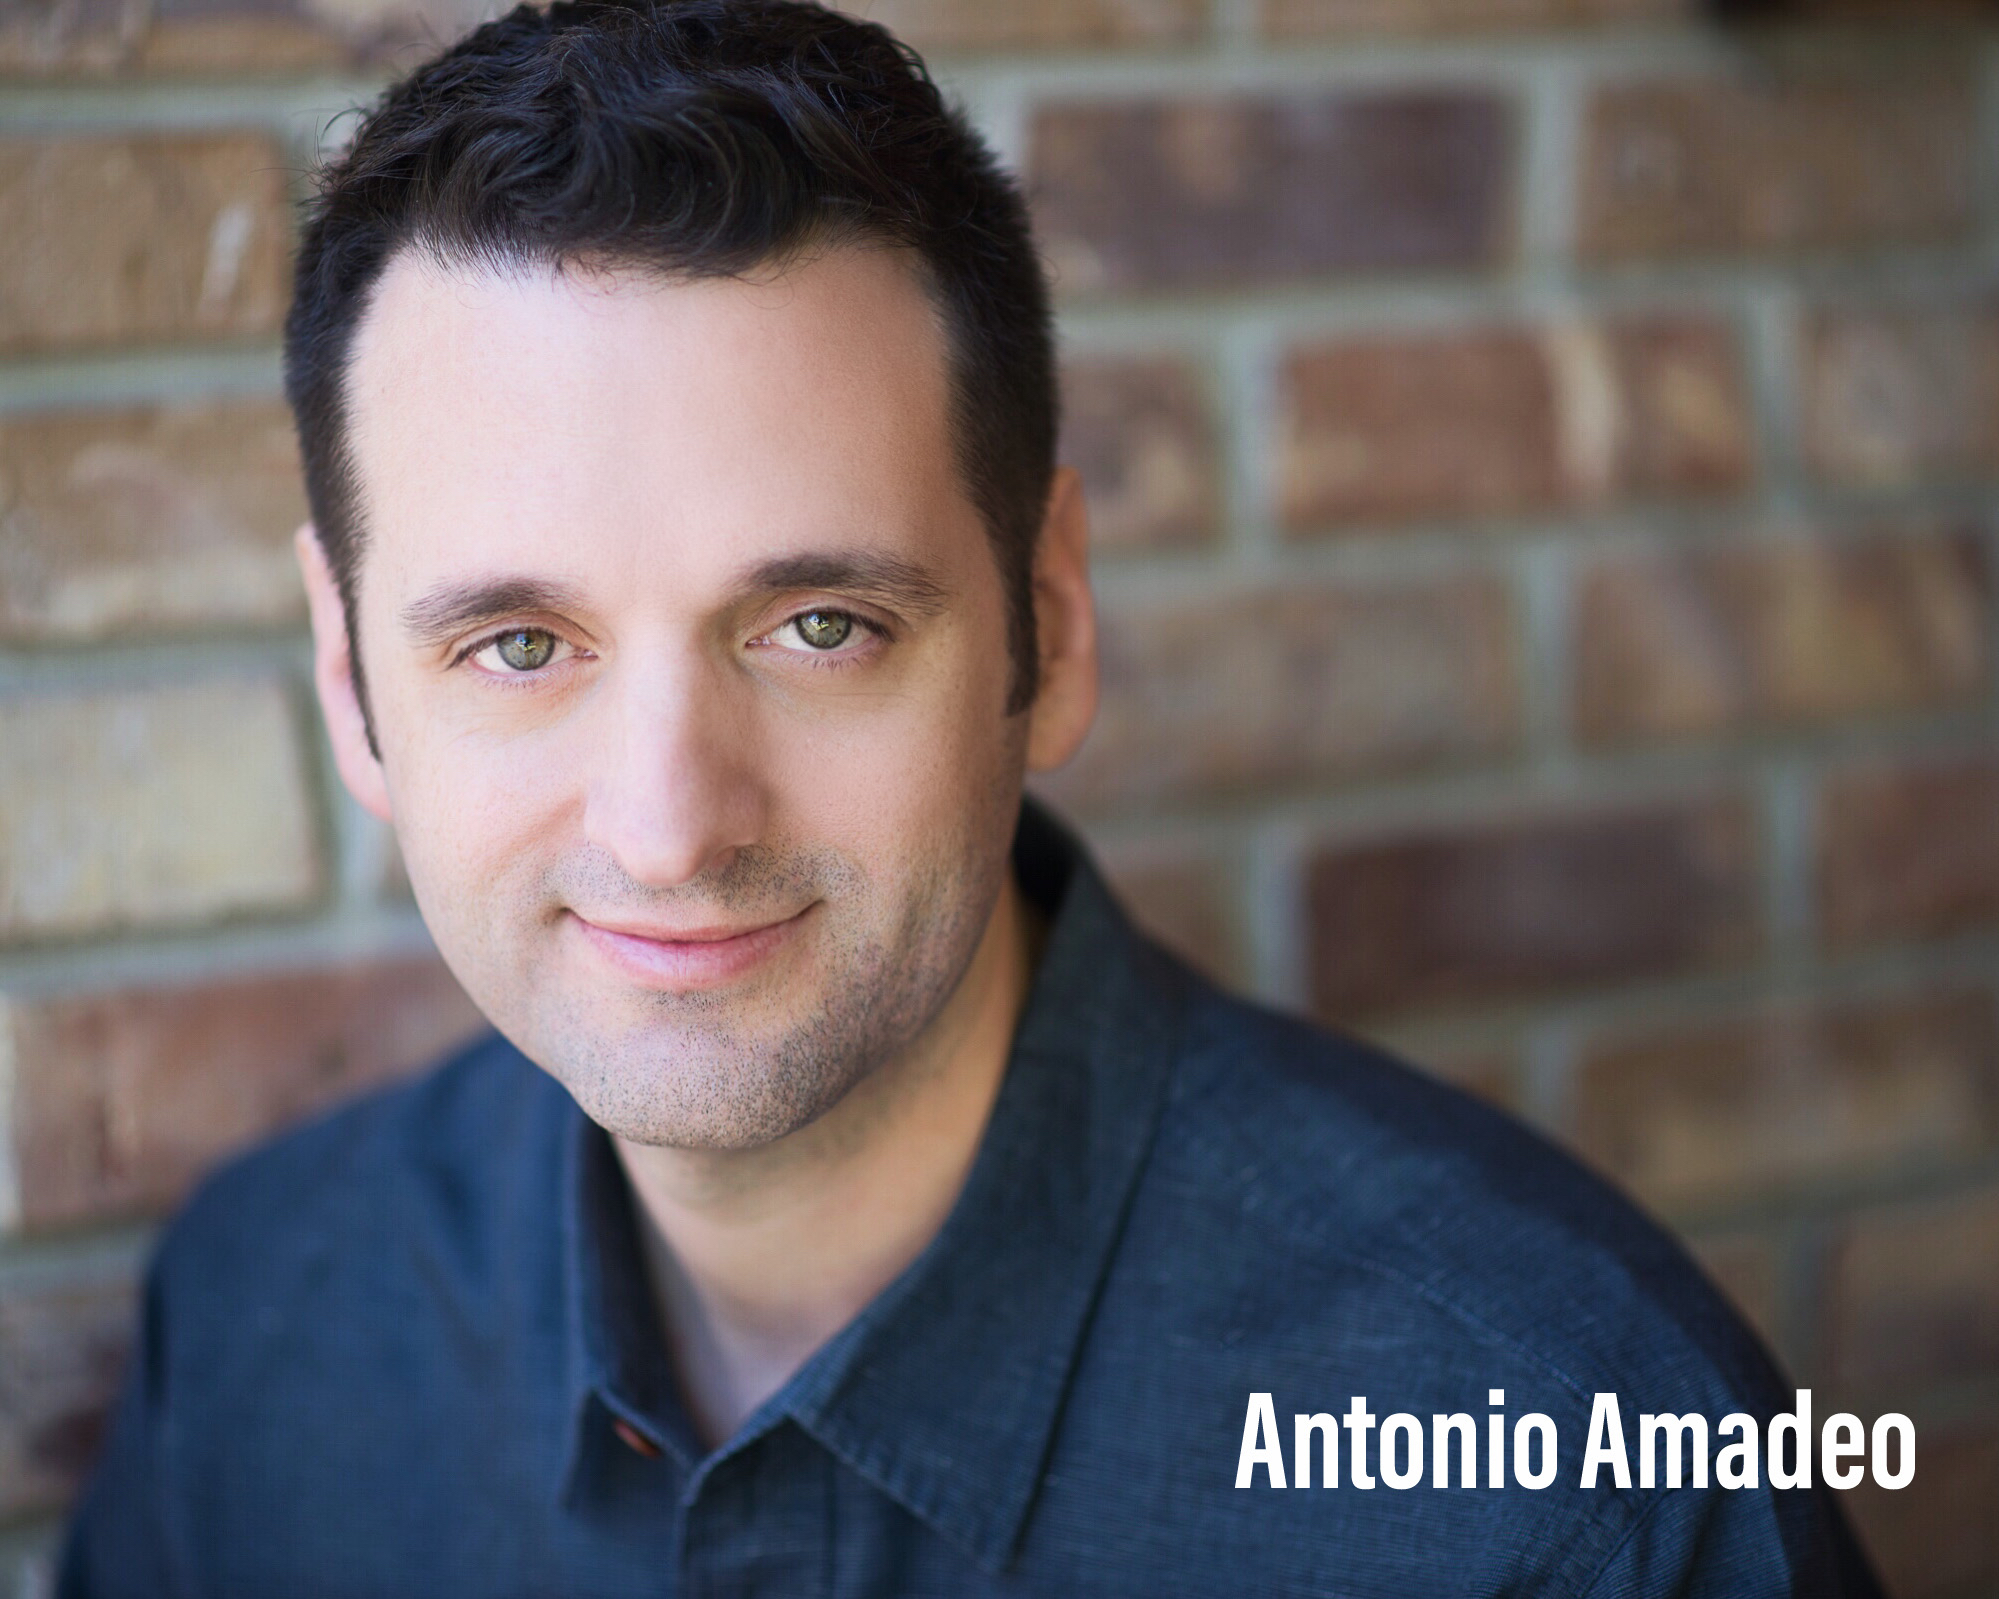 Antonio Amadeo* - ANTONIO AMADEO (Greg) is thrilled to be making his Colorado debut with the great group of artists at Benchmark. A proud member of Actors' Equity Association, Antonio hails from South Florida where his credits included: Constellations (with his wife Katherine Amadeo), The Pillowman (2007 Carbonell Award Winner), It's Only A Play, and A Round-Heeled Woman starring Sharon Gless (Best Supporting Actor 2011, Miami New Times) at Gablestage. Daniel's Husband (2015 Carbonell Award Winner, 2015 Silver Palm Award Winner) at Island City Stage,The Cha-Cha of a Camel Spider (Carbonell nominee), and Yankee Tavern at Florida Stage, Lombardi starring Ray Abruzzo and The Elephant Man (Carbonell nominee) at Mosaic Theatre, and A Man Puts On A Play (2013 Silver Palm Award Winner) and The Lonesome West at the Naked Stage among others. All love to Katie, Lara and Max!